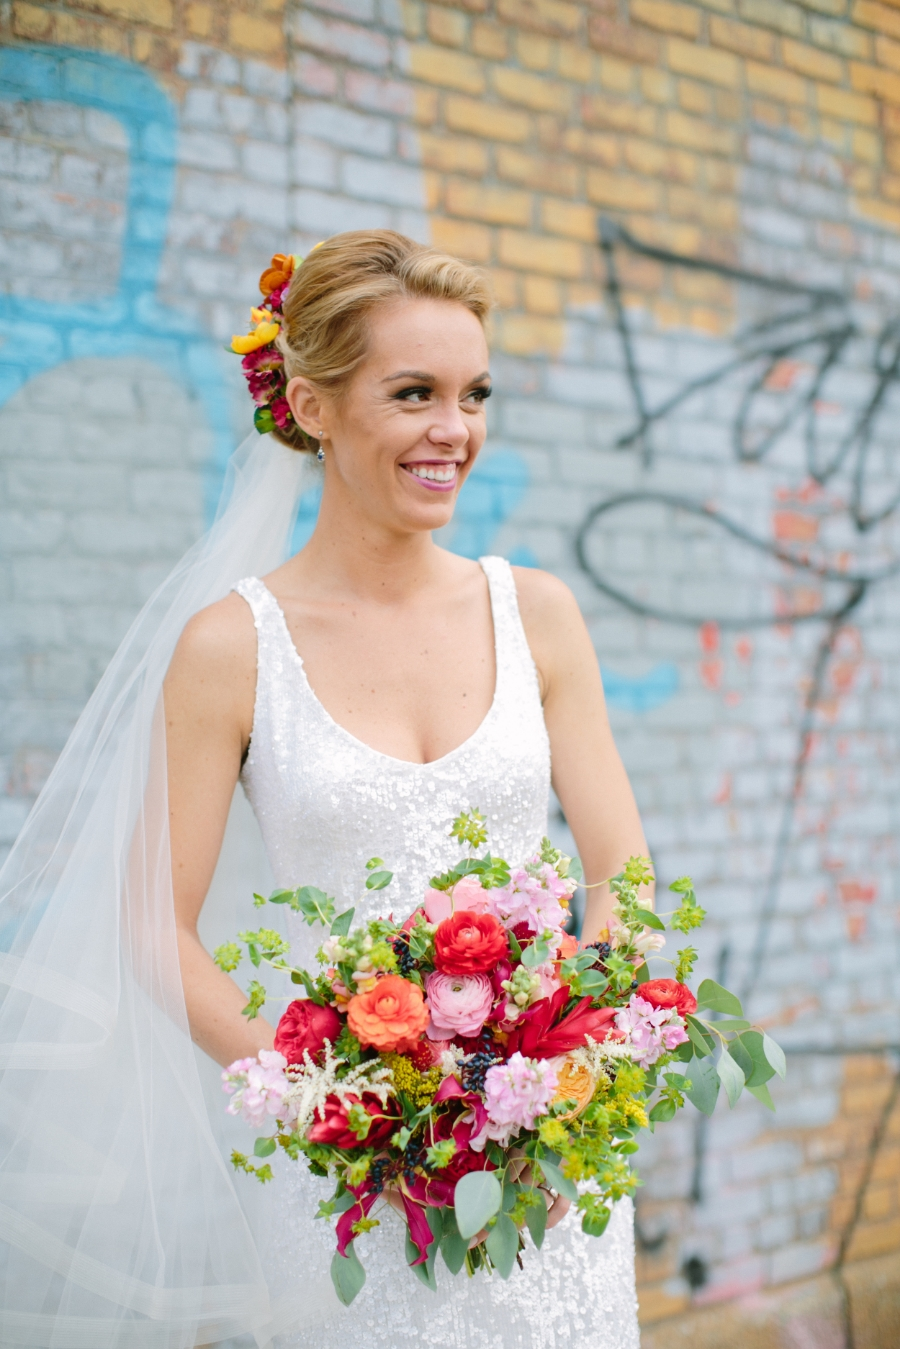 Jordy.Jared - Bridal Portrait.jpg